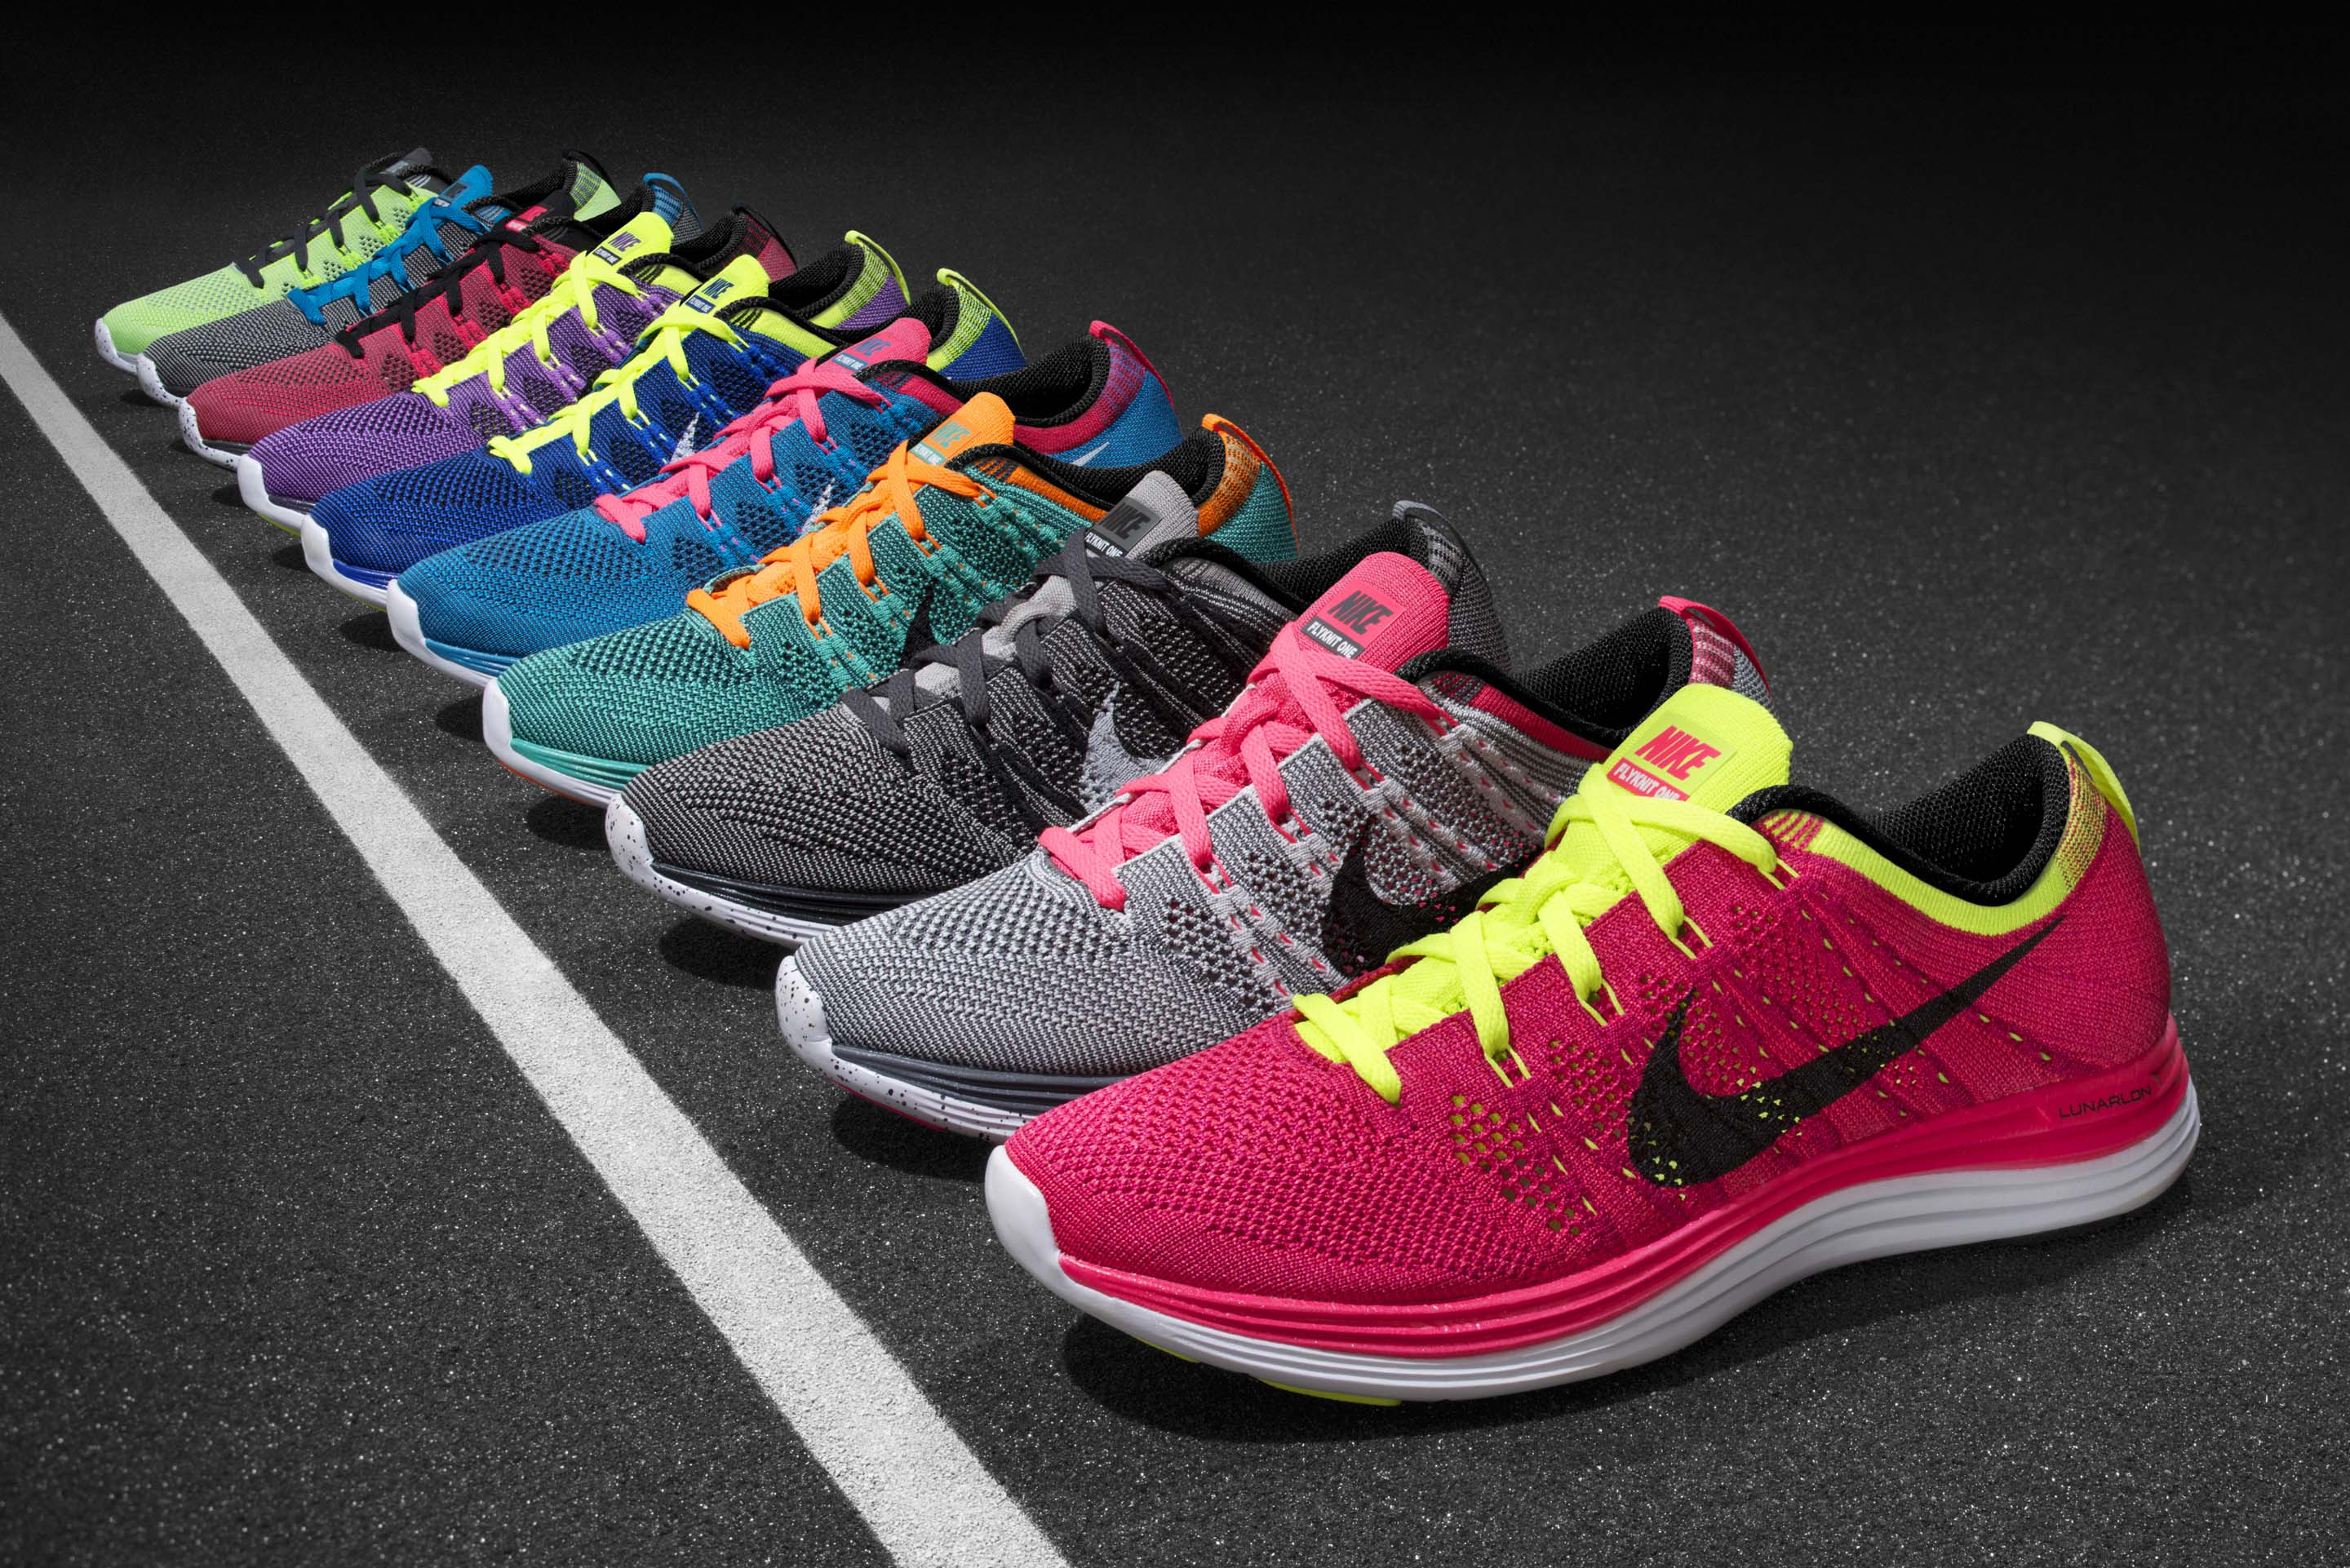 3d9692725af Are These The World s Most Comfortable Running Shoes  Maybe ...